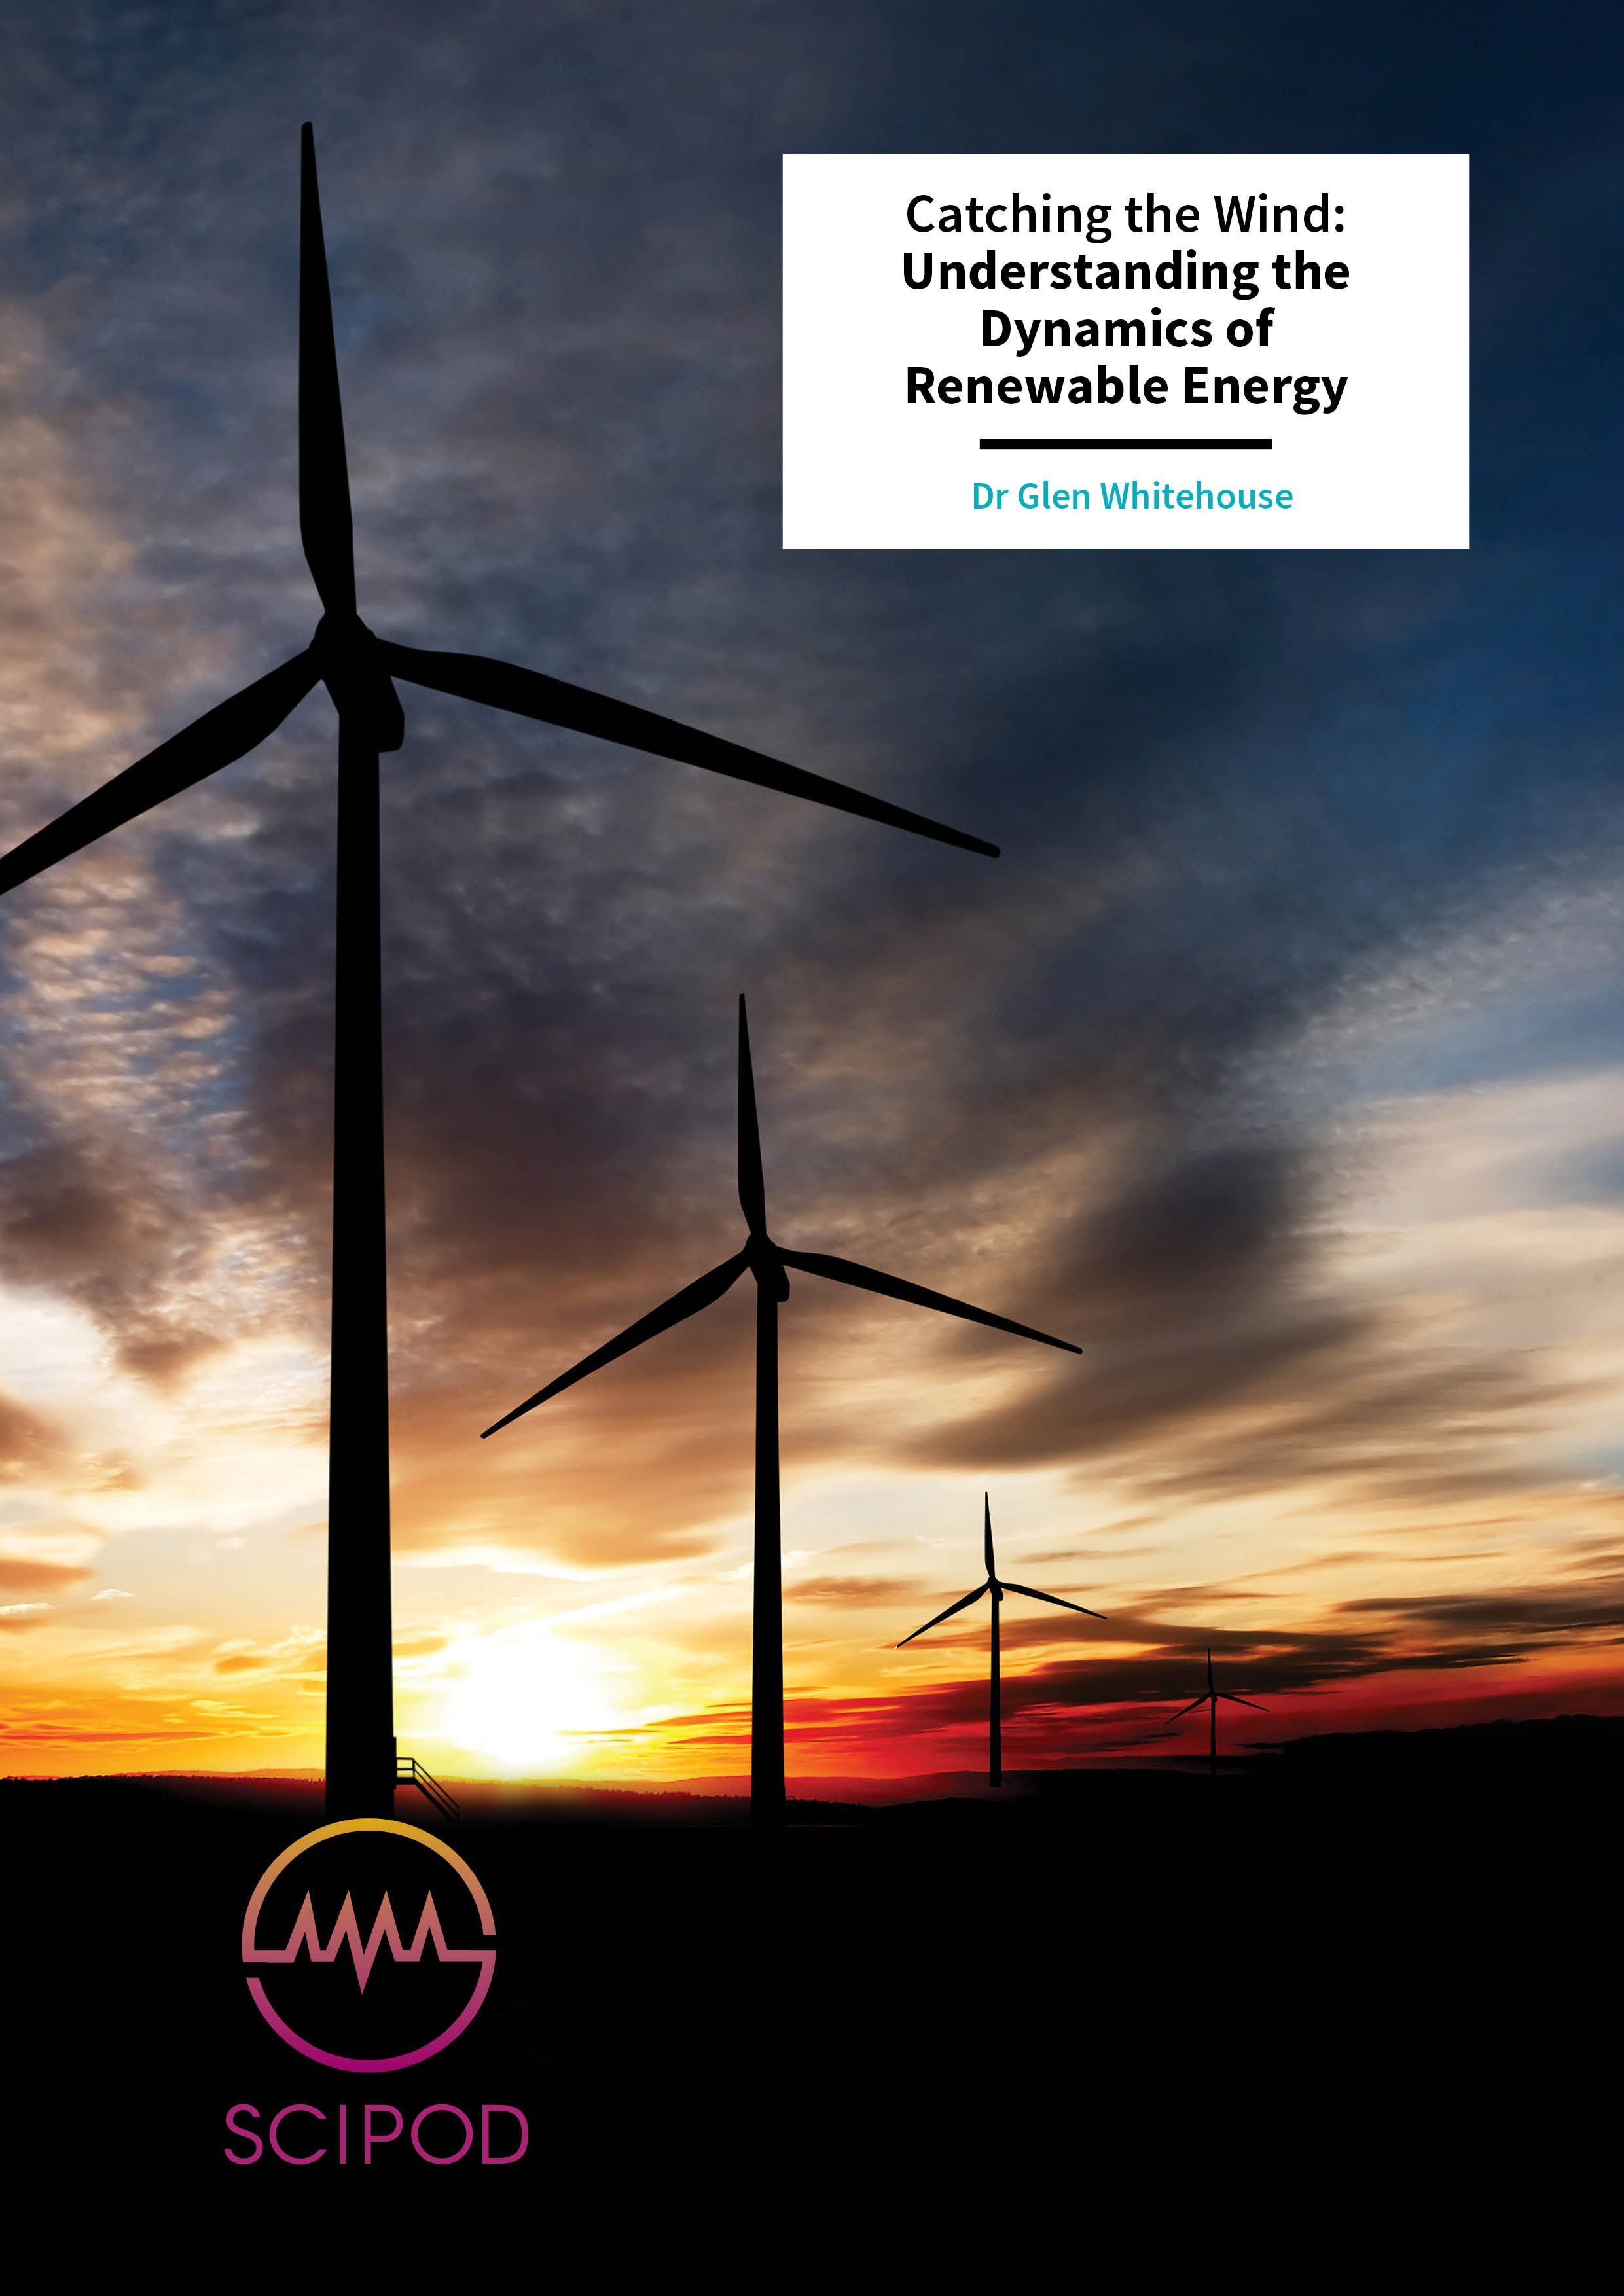 Catching the Wind: Understanding the Dynamics of Renewable Energy – Dr Glen Whitehouse, Continuum Dynamics, Inc.